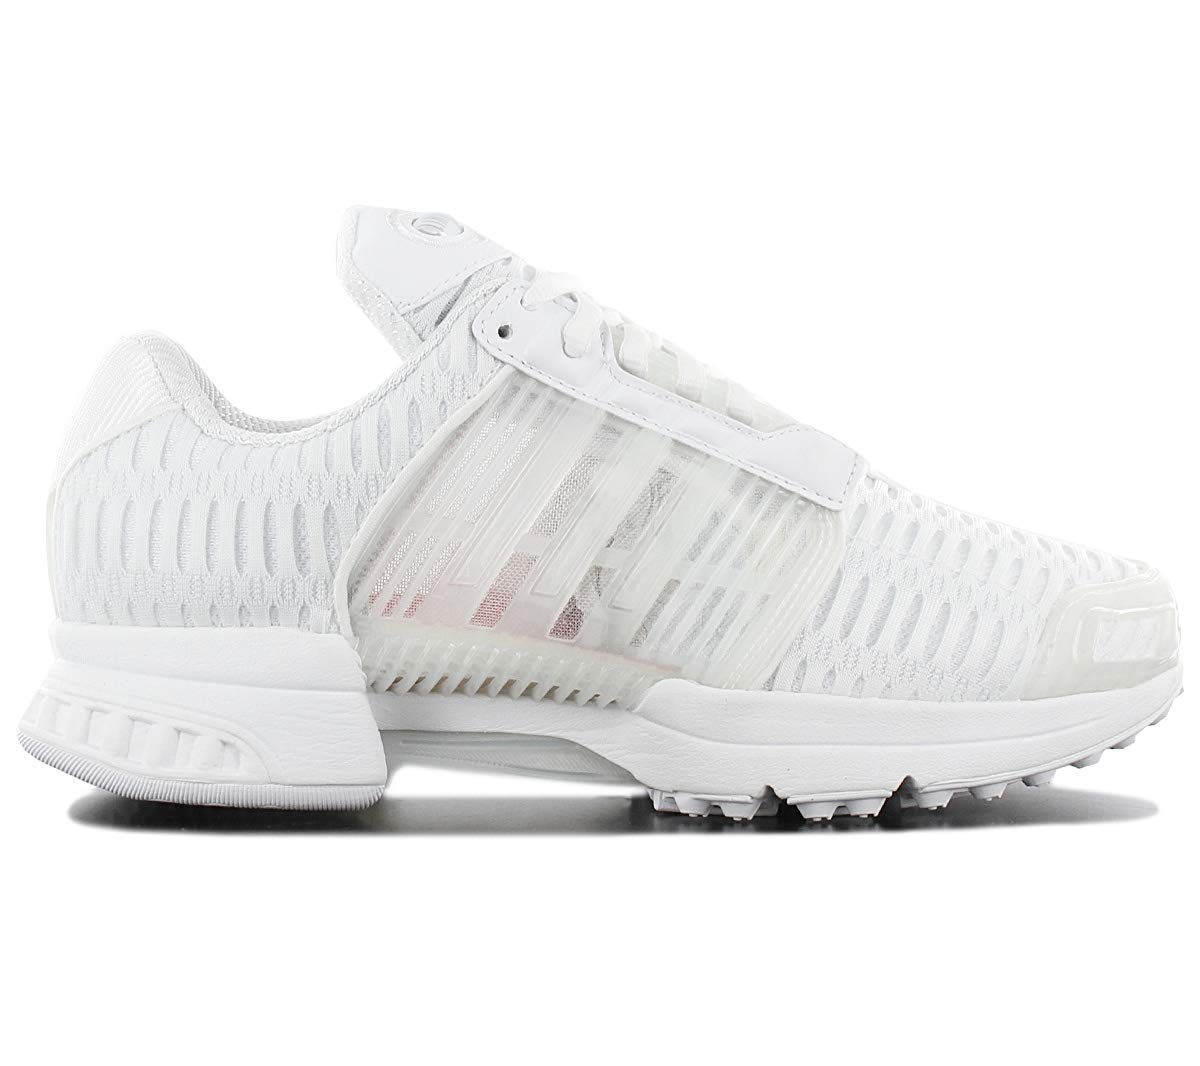 official photos 9f30e aecd3 adidas Originals Clima Cool 1 Mens Running Trainers Sneakers (US 5, White  White White S75927)